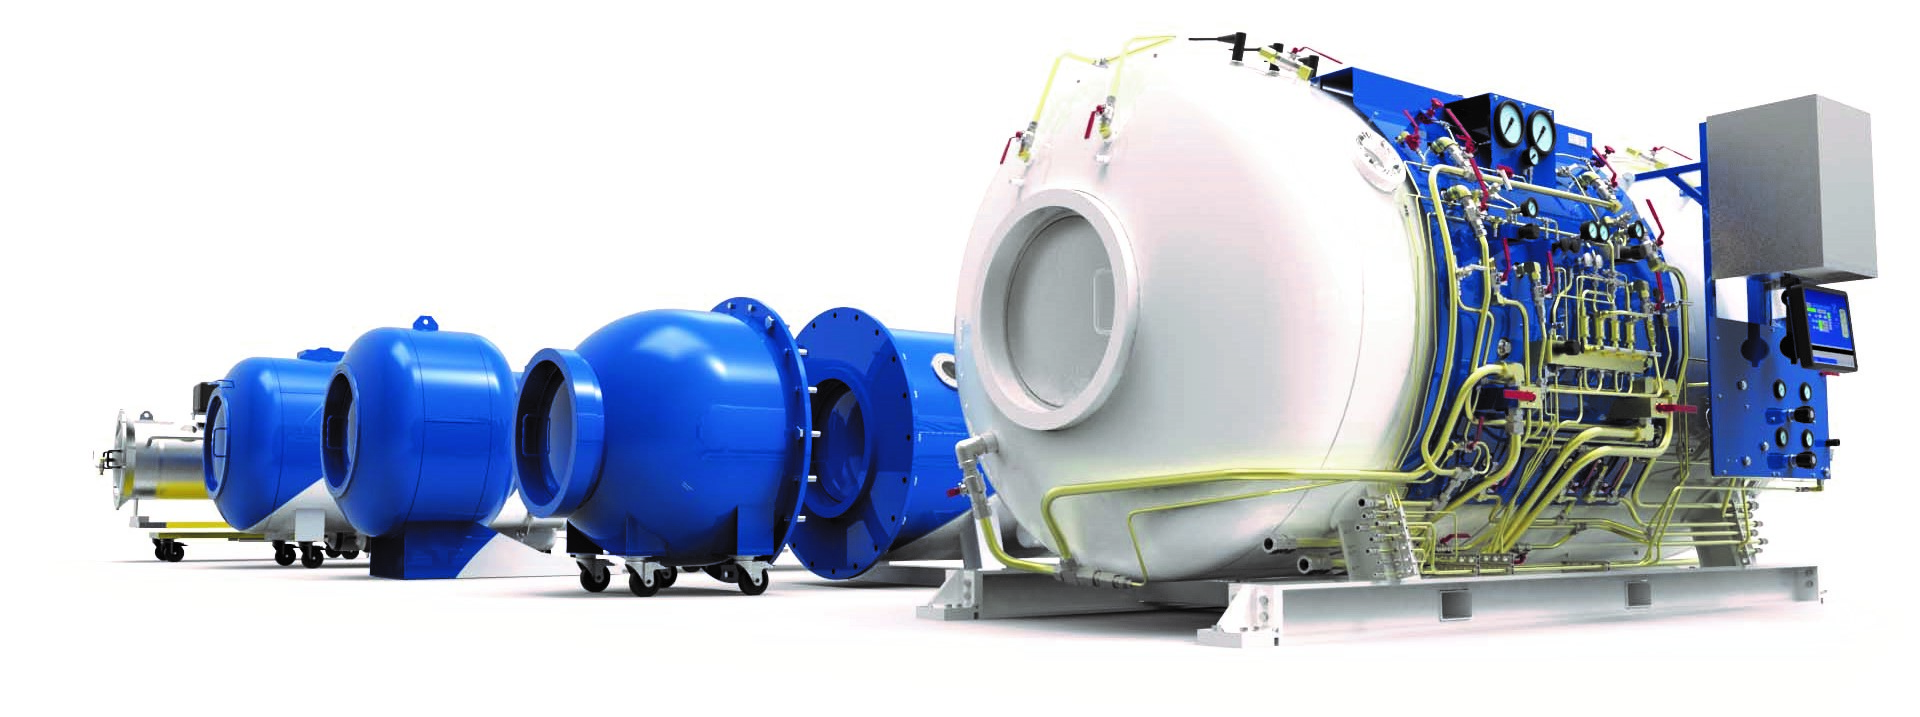 Small diving chamber. Different types of hyperbaric